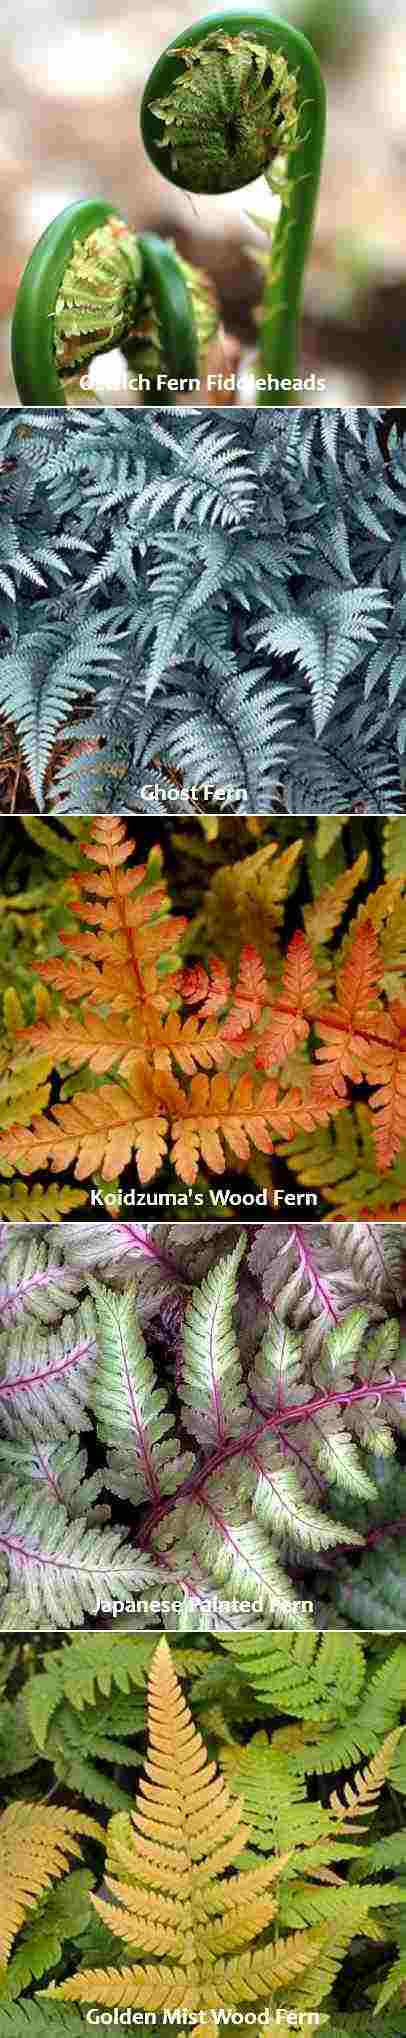 Friday's Flower - Fern - 4 colors - tall rect w fiddleheads.jpg